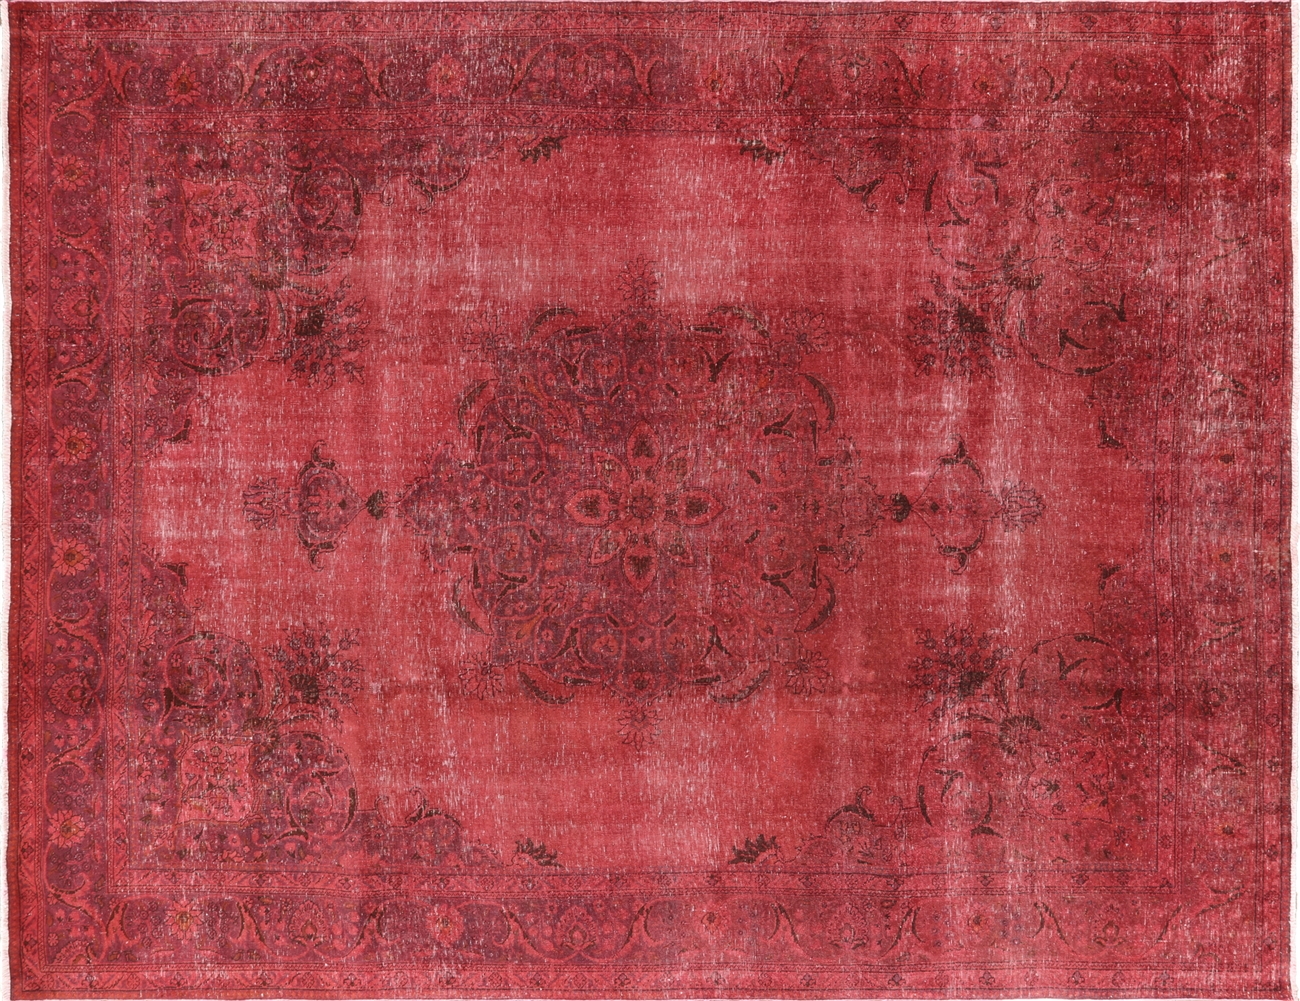 Pink Overdyed Floral Oriental Hand Knotted Wool Area Rug - 9'x12' Pink Overdyed Floral Oriental Hand Knotted Wool Area Rug H9610